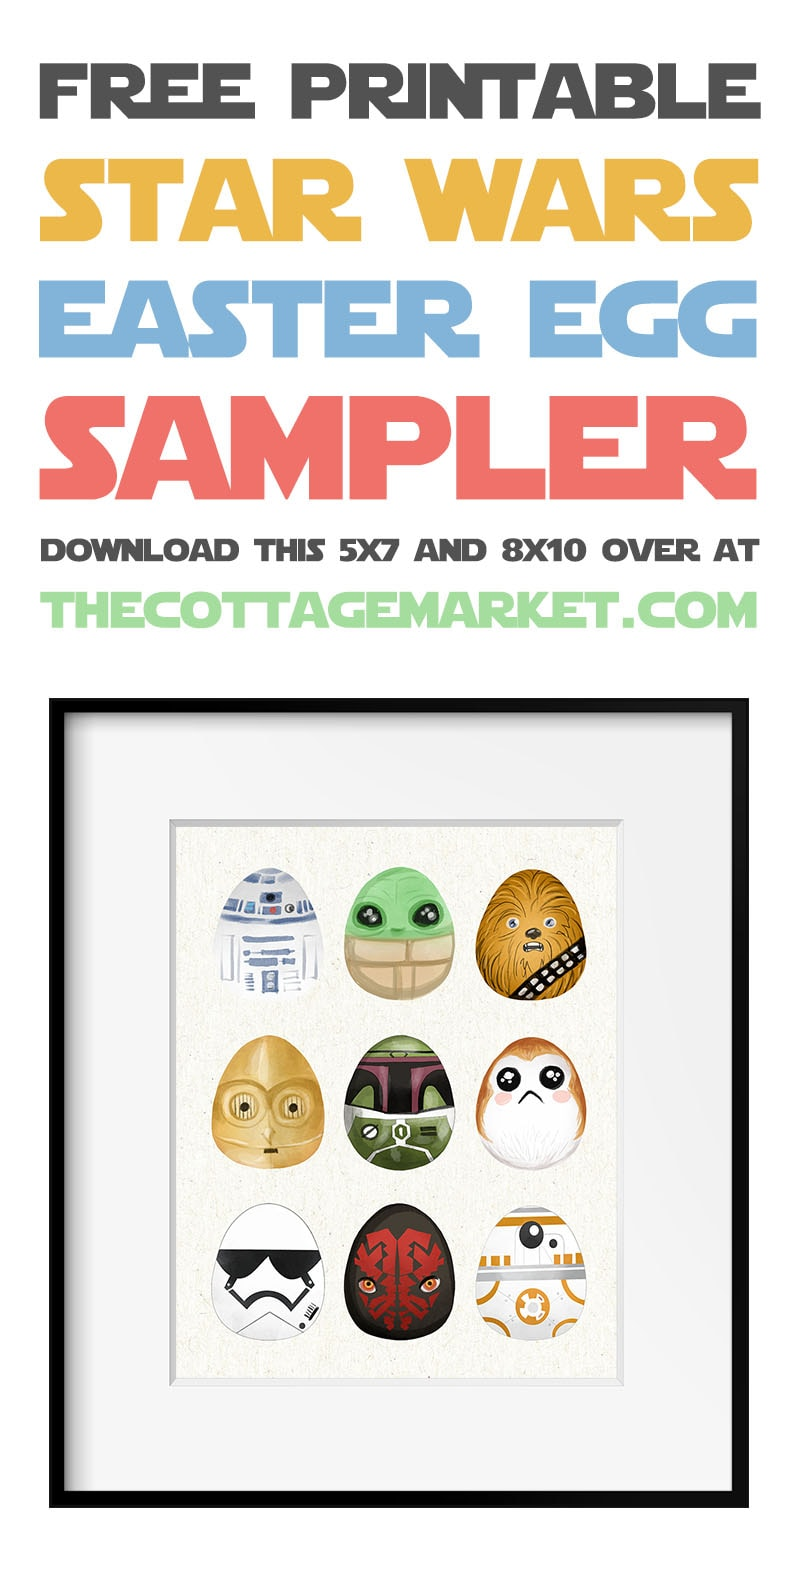 This Free Printable Star Wars Easter Egg Sampler is a must have for any Star Wars Lover out there!  This unique piece is totally out of this world!